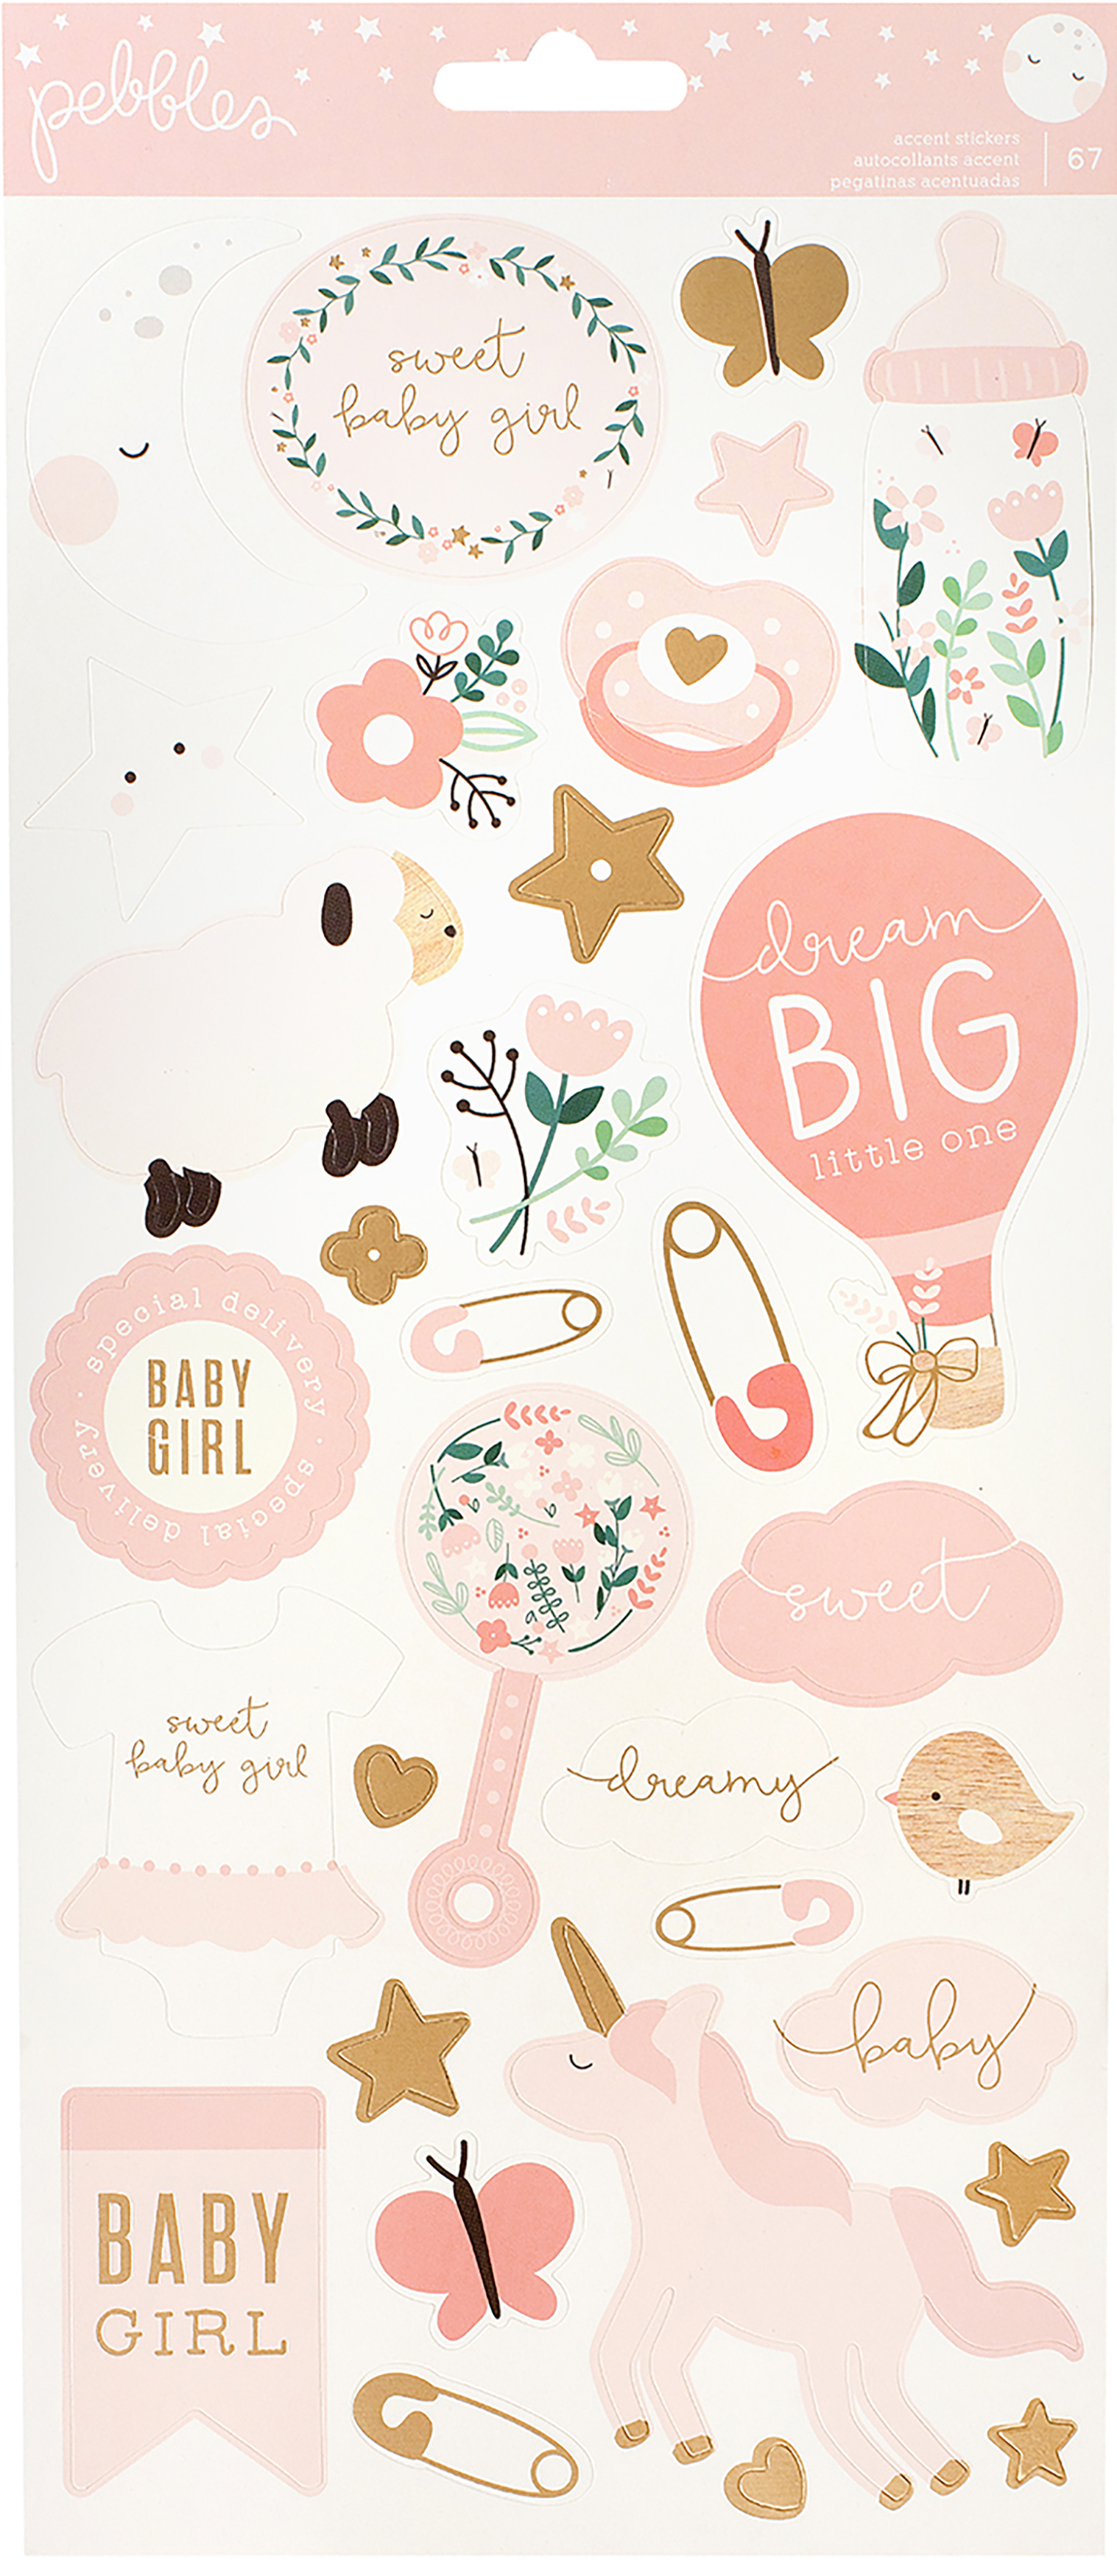 ^Pebbles Night Night Baby Girl - 6x12 Accent Stickers